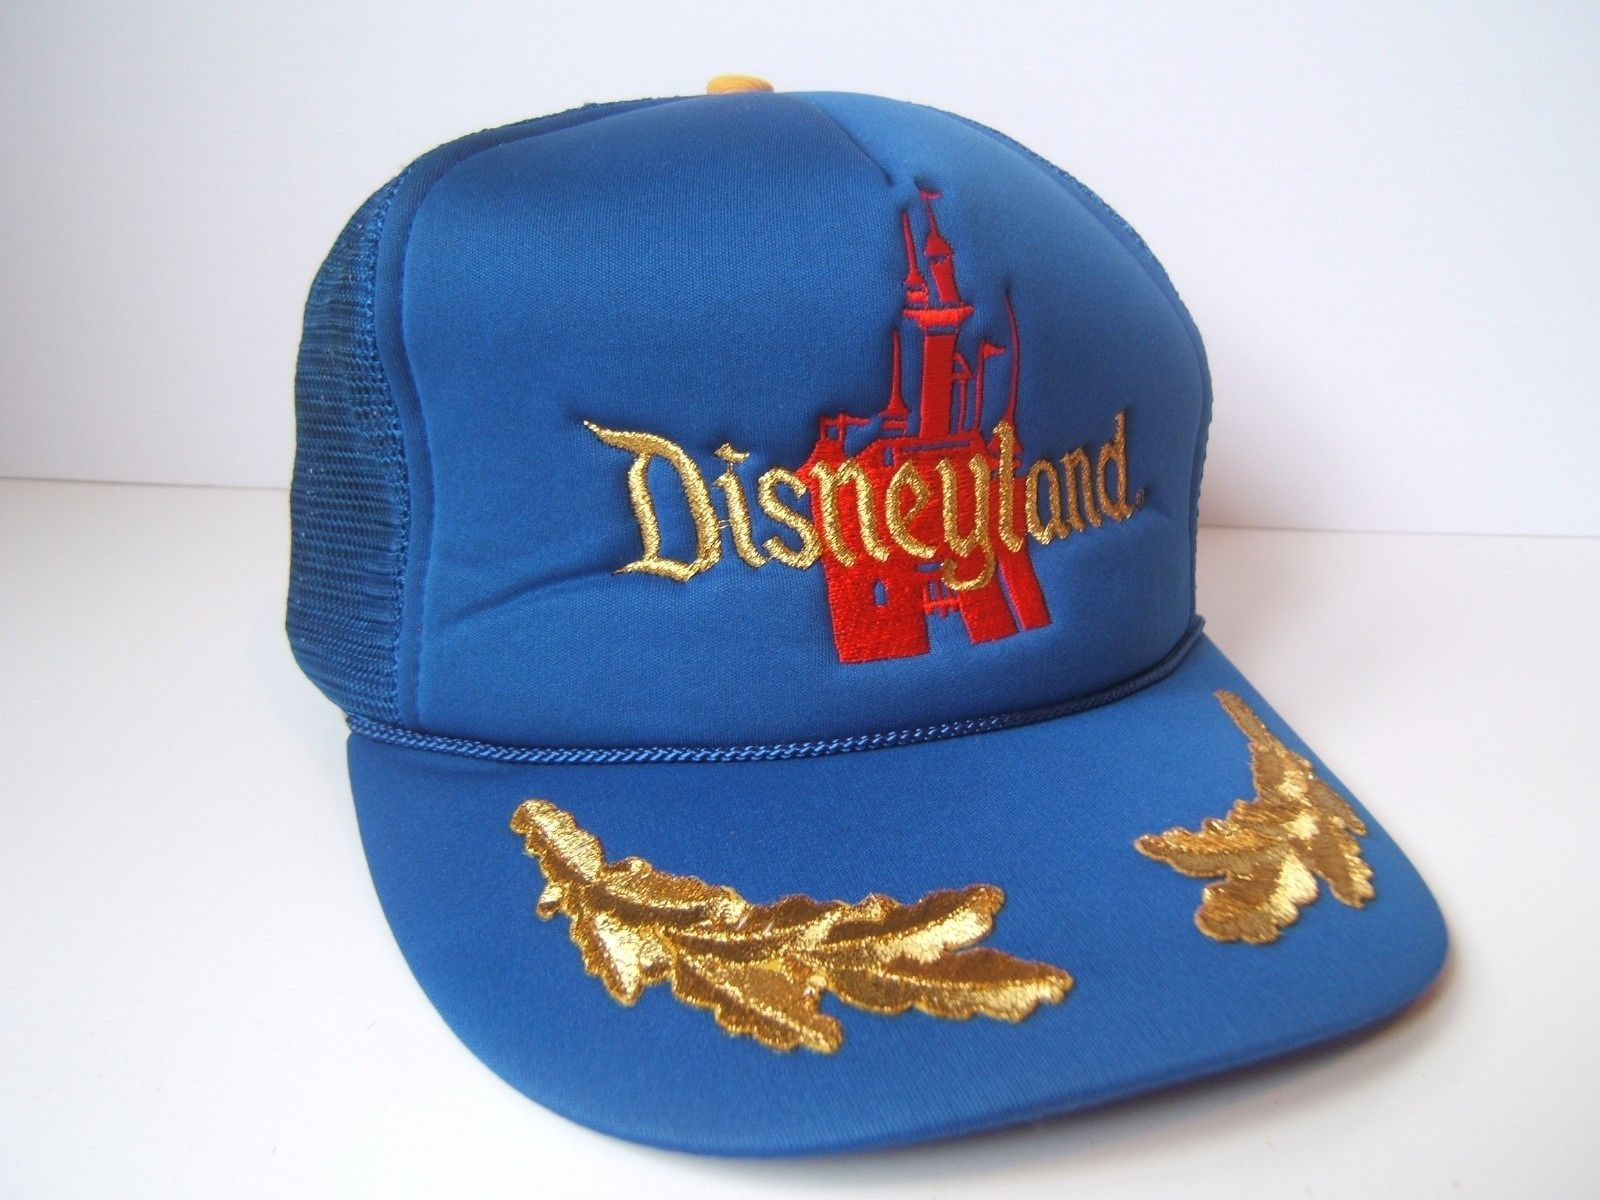 Primary image for Vintage Disneyland Hat Blue Disney Snapback Trucker Cap